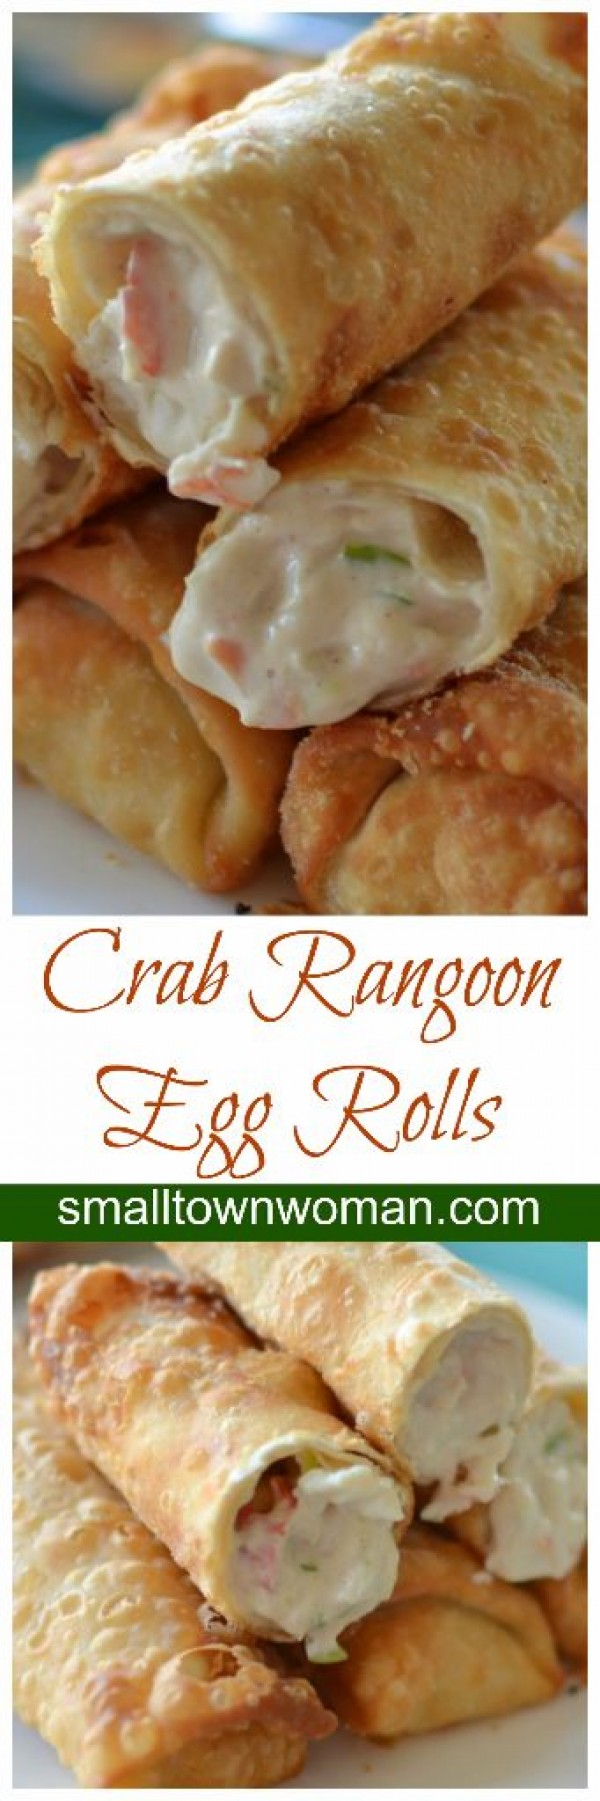 Get the recipe Crab Rangoon Egg Rolls @recipes_to_go